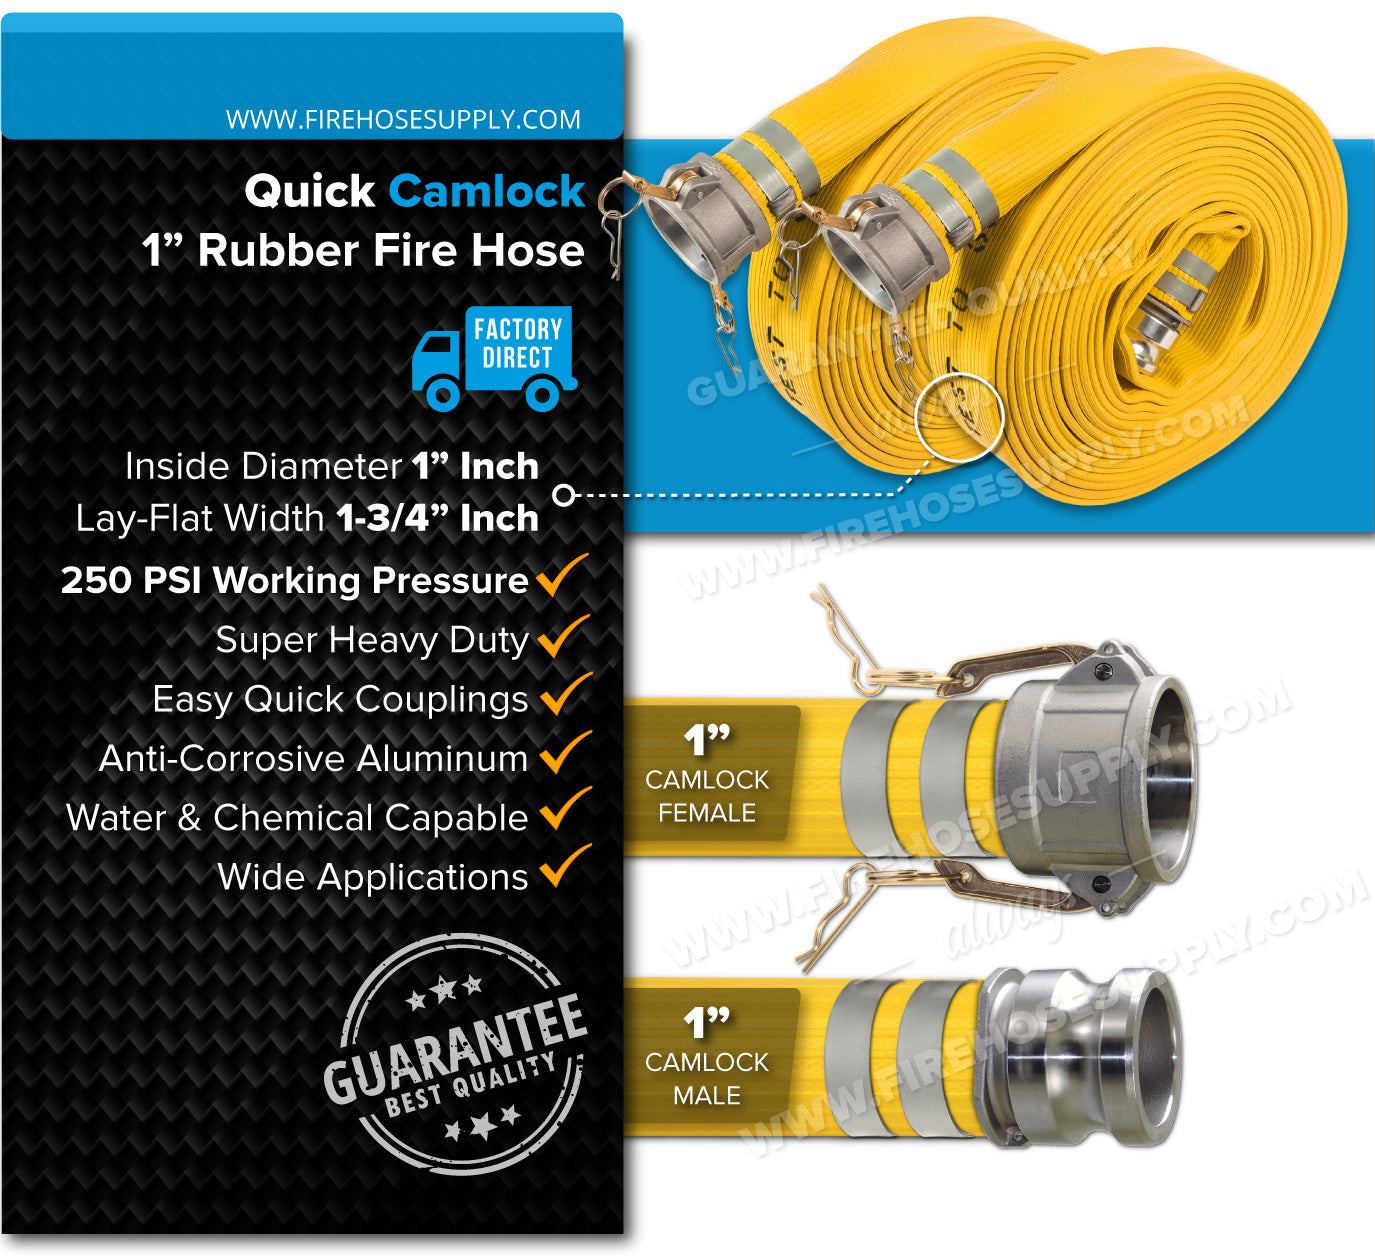 1 Inch Rubber Nitrile Camlock Fire Hose Overview